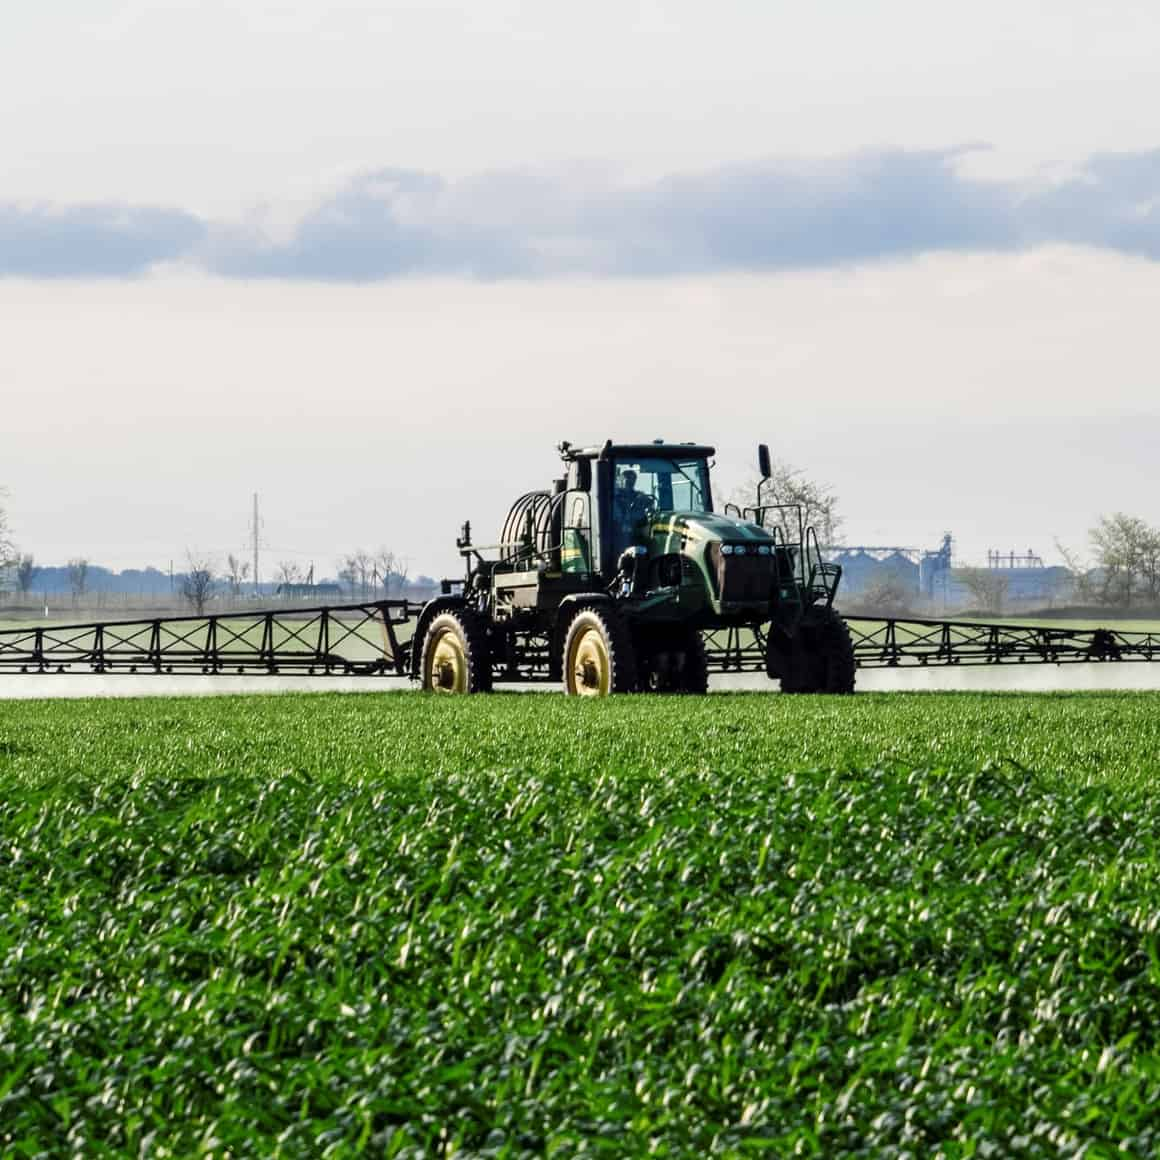 The Equity Offers Dicamba Specialized Training for Licensed Applicators